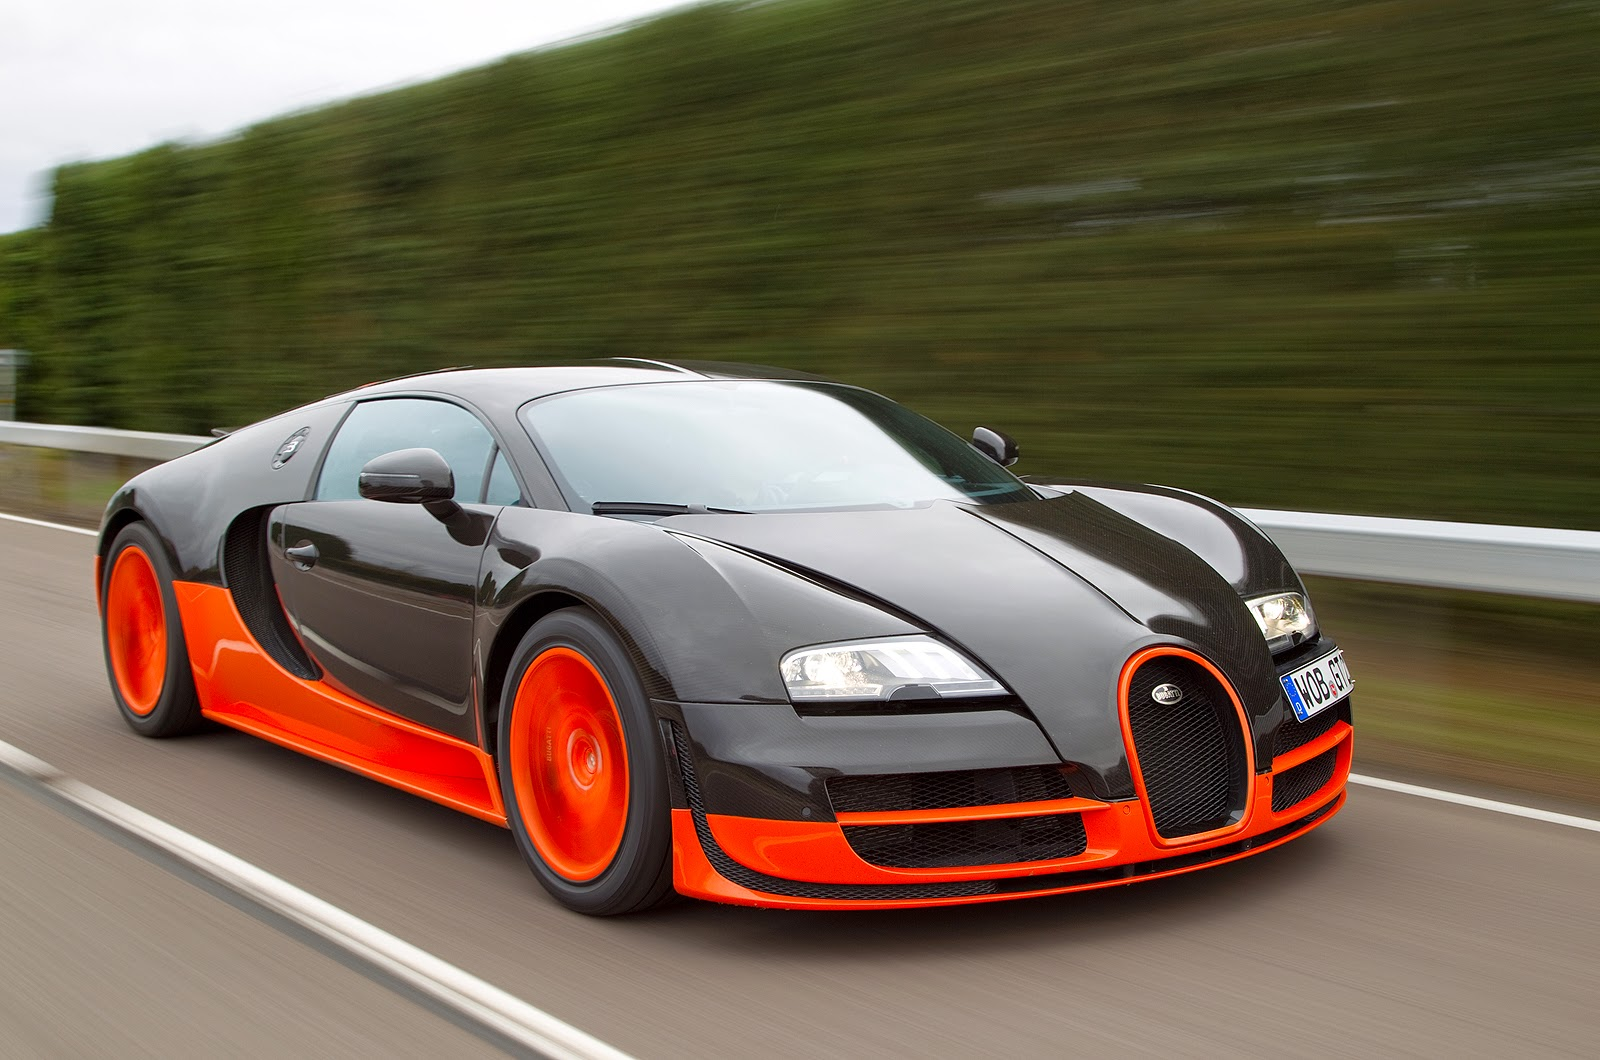 2015 Bugatti Veyron 16.4 Review - Supercar Review ~ Top Speed Review